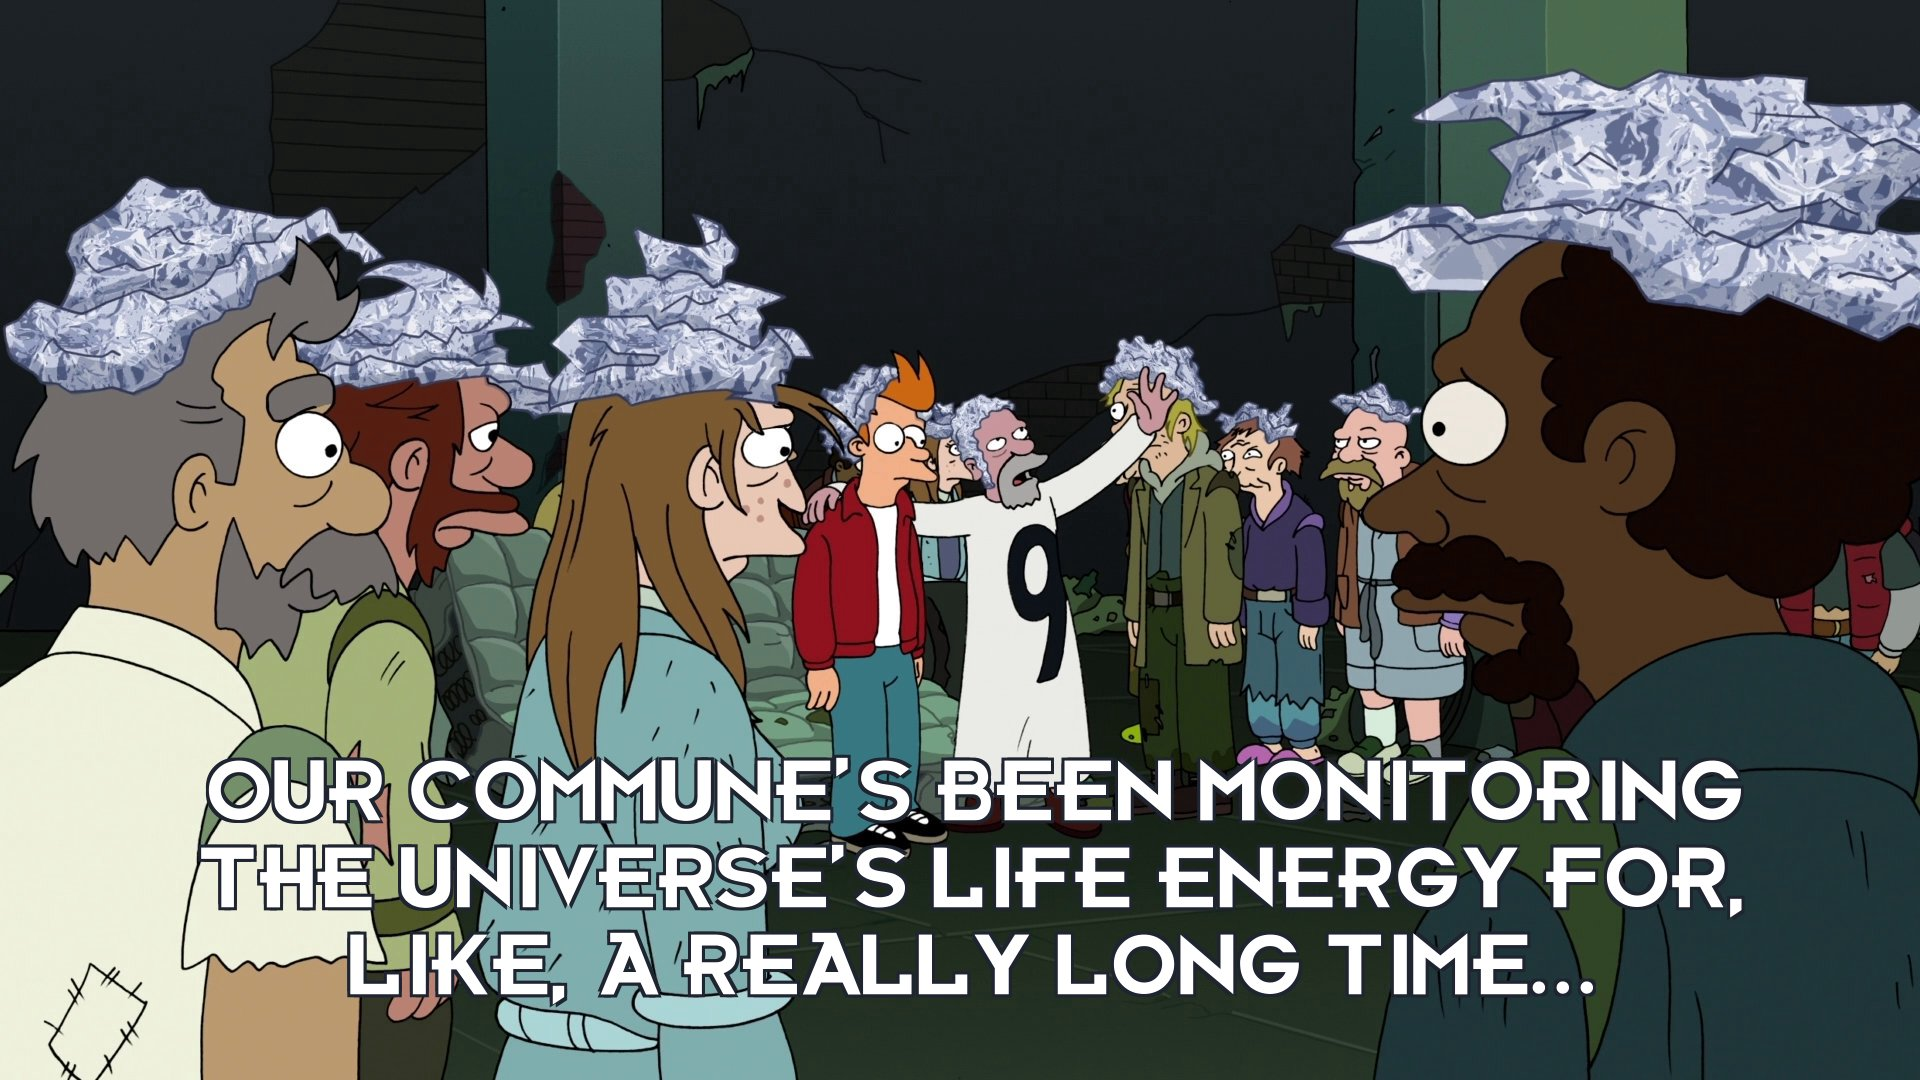 Nine: Our commune's been monitoring the Universe's life energy for, like, a really long time...